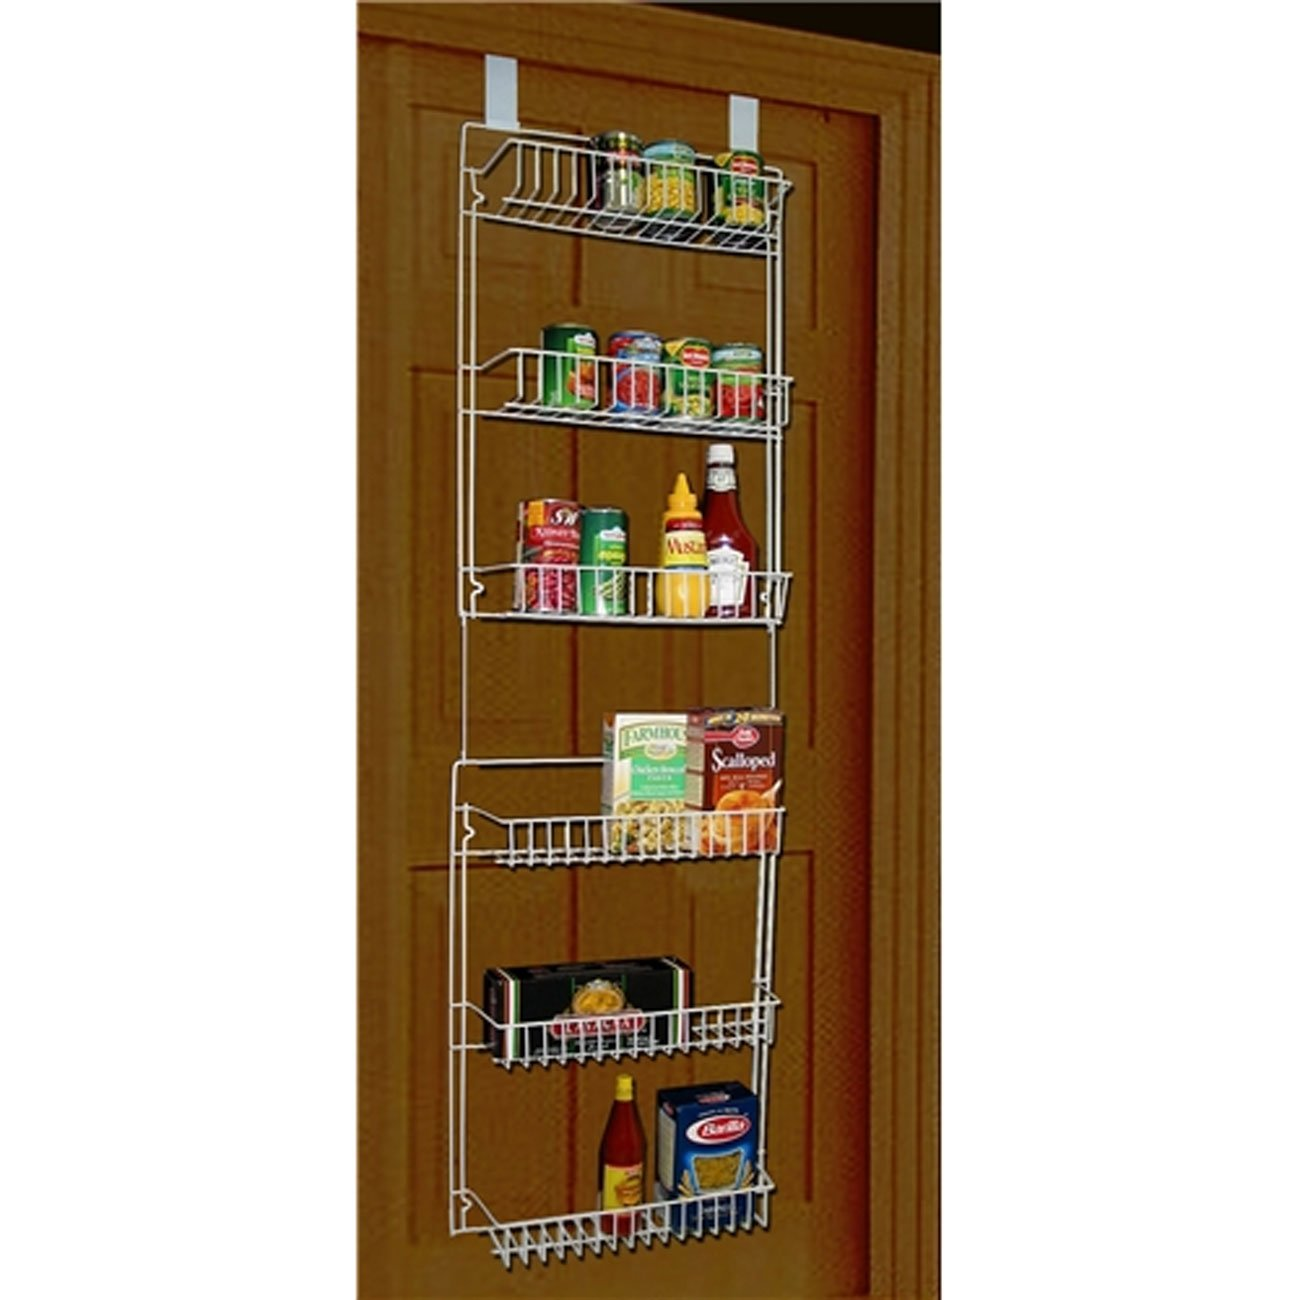 Exceptionnel Amazon.com: Storage Dynamics 5 Foot Vinyl Covered Steel Over Door Storage  Basket Rack: Home U0026 Kitchen